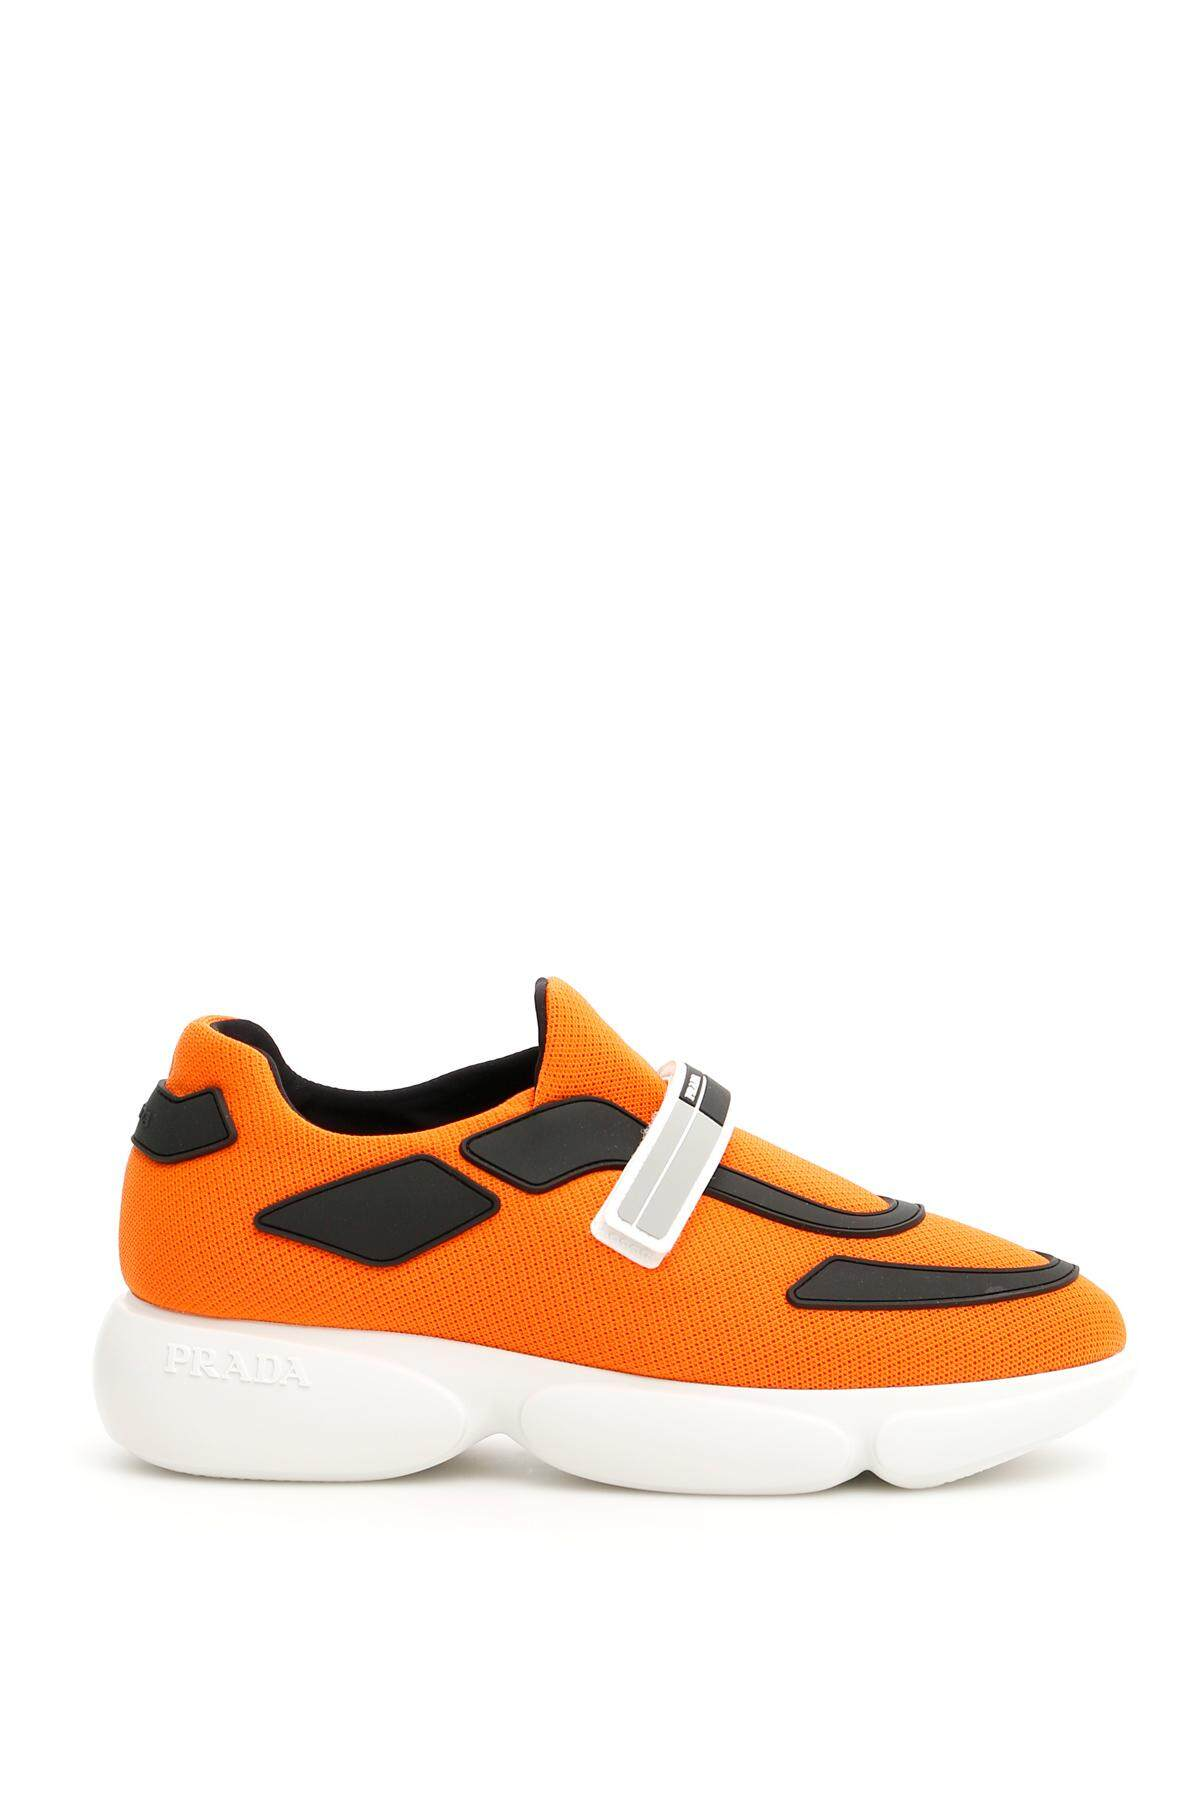 2423ab7b Sneakers for Women for sale - Running Shoes for Women Online Deals ...